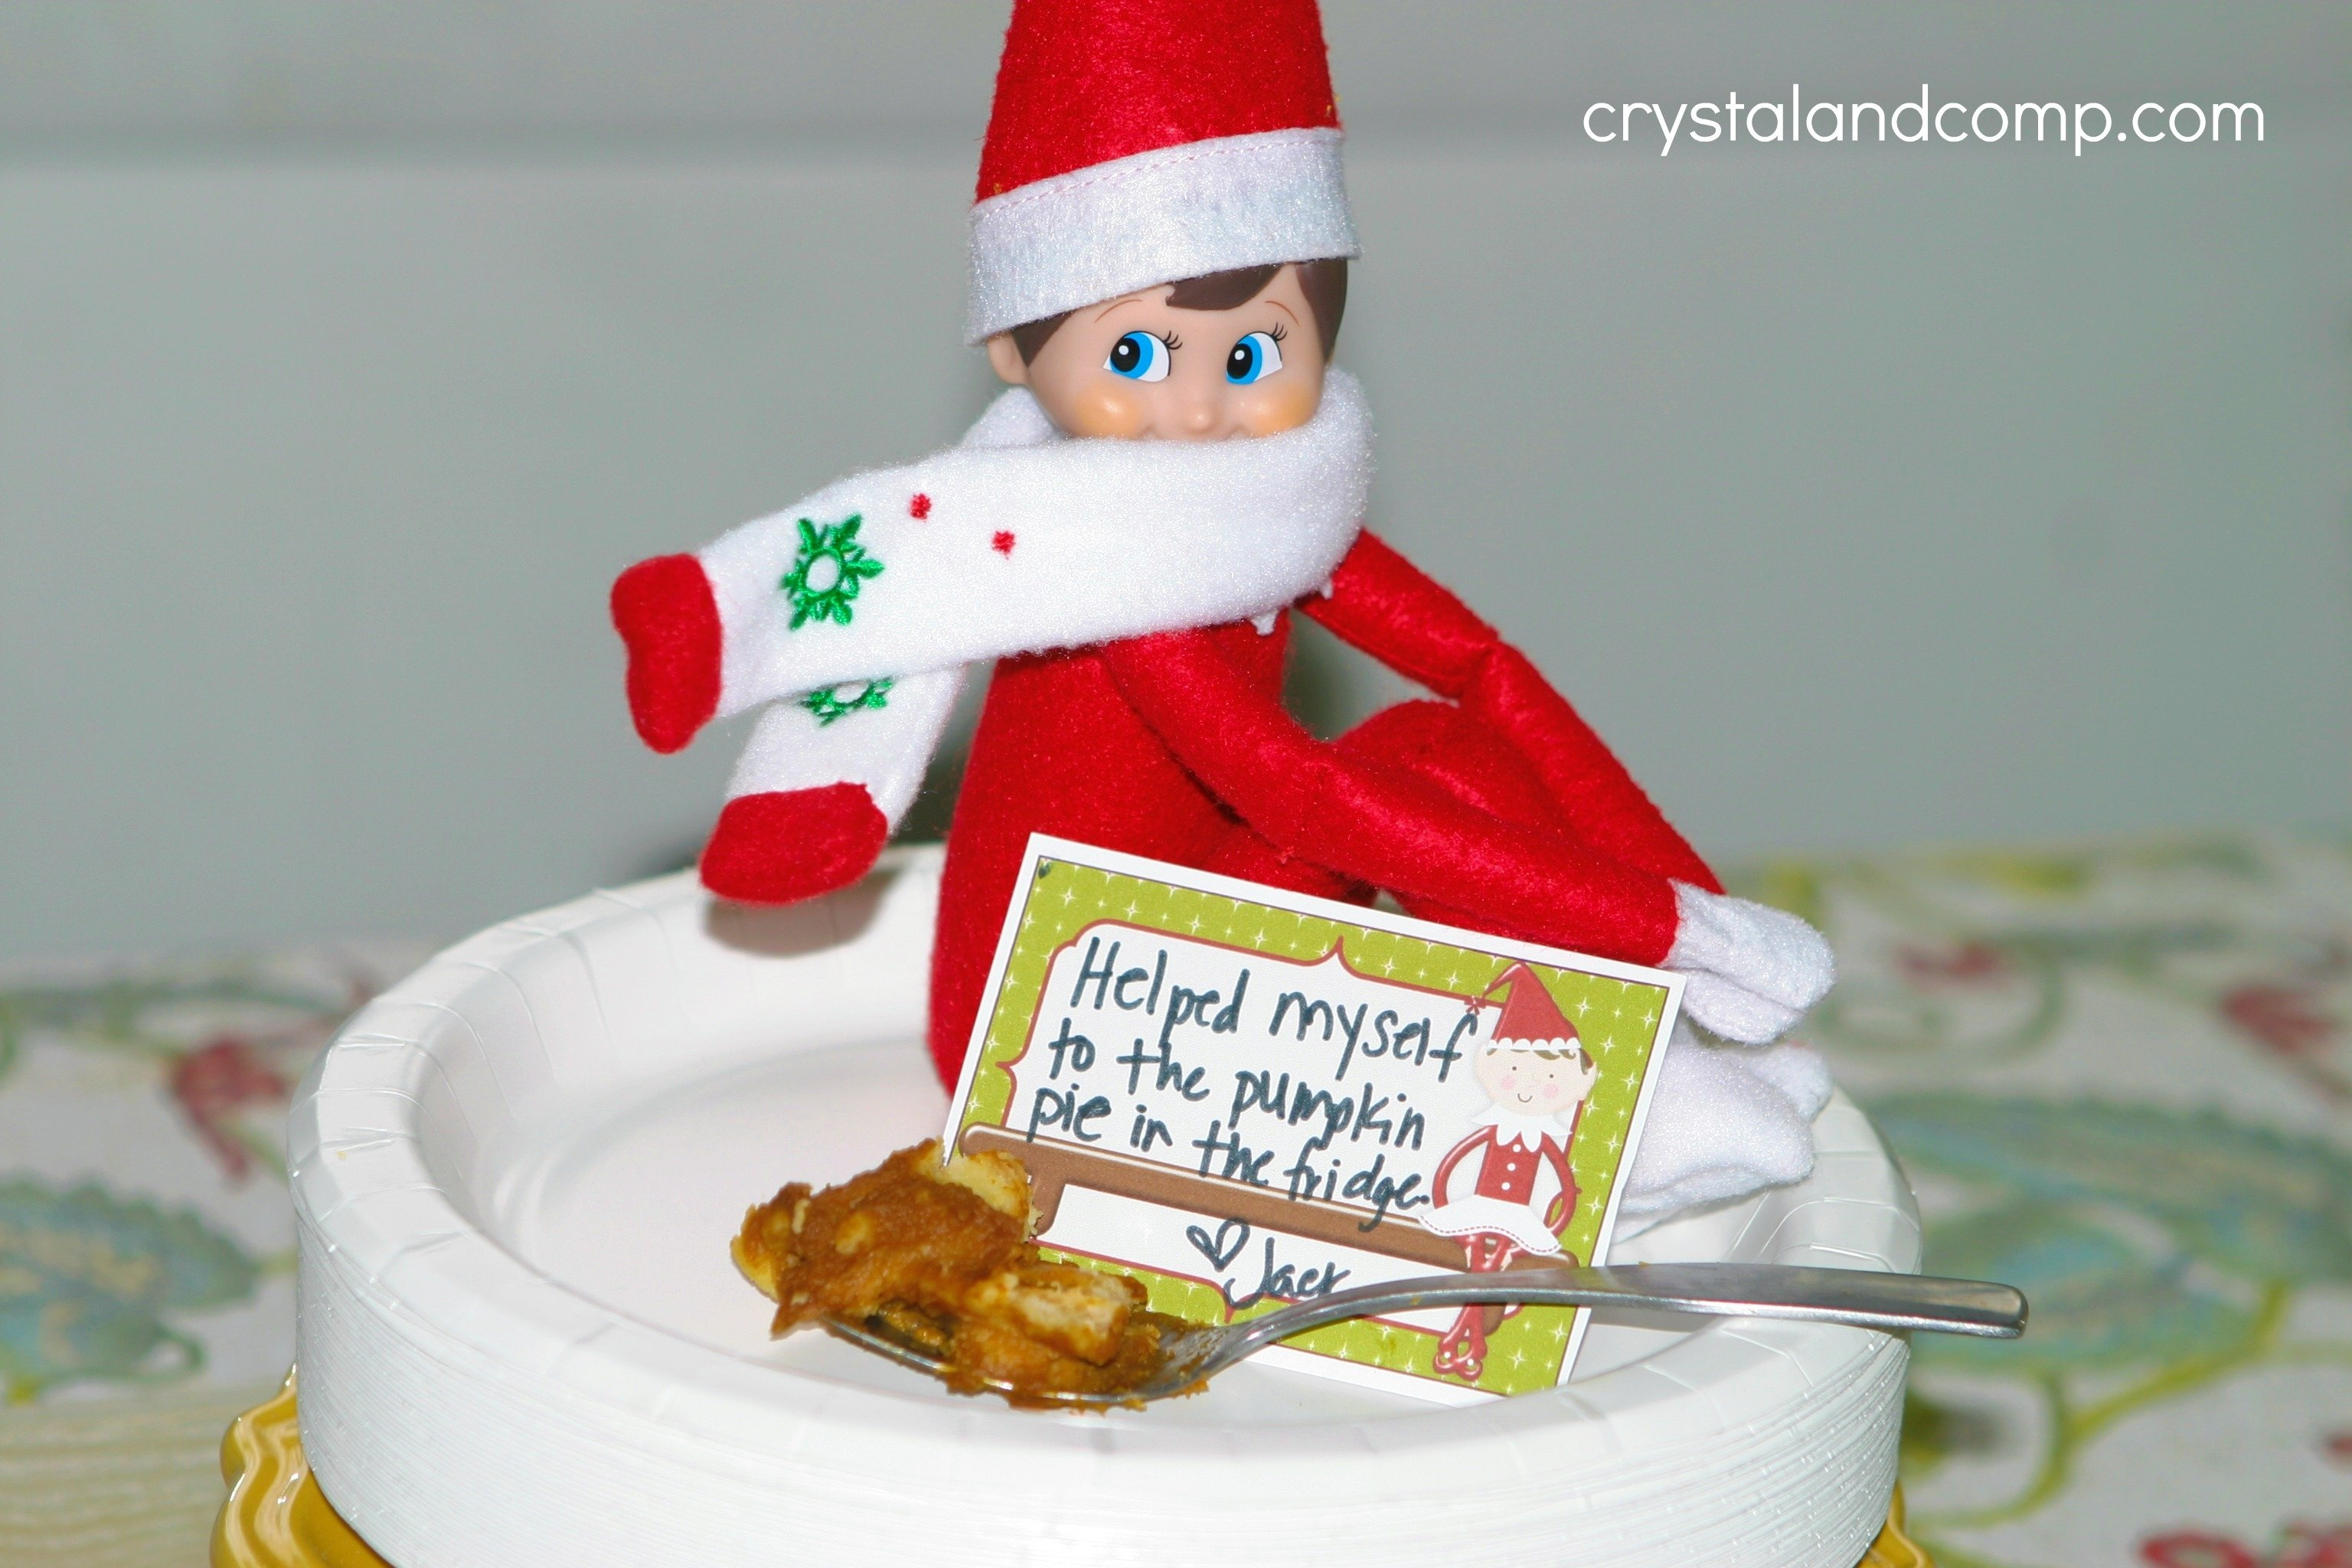 10 Pretty Ideas For Elf On A Shelf elf on the shelf ideas eat leftover pumpkin pie 1 2021